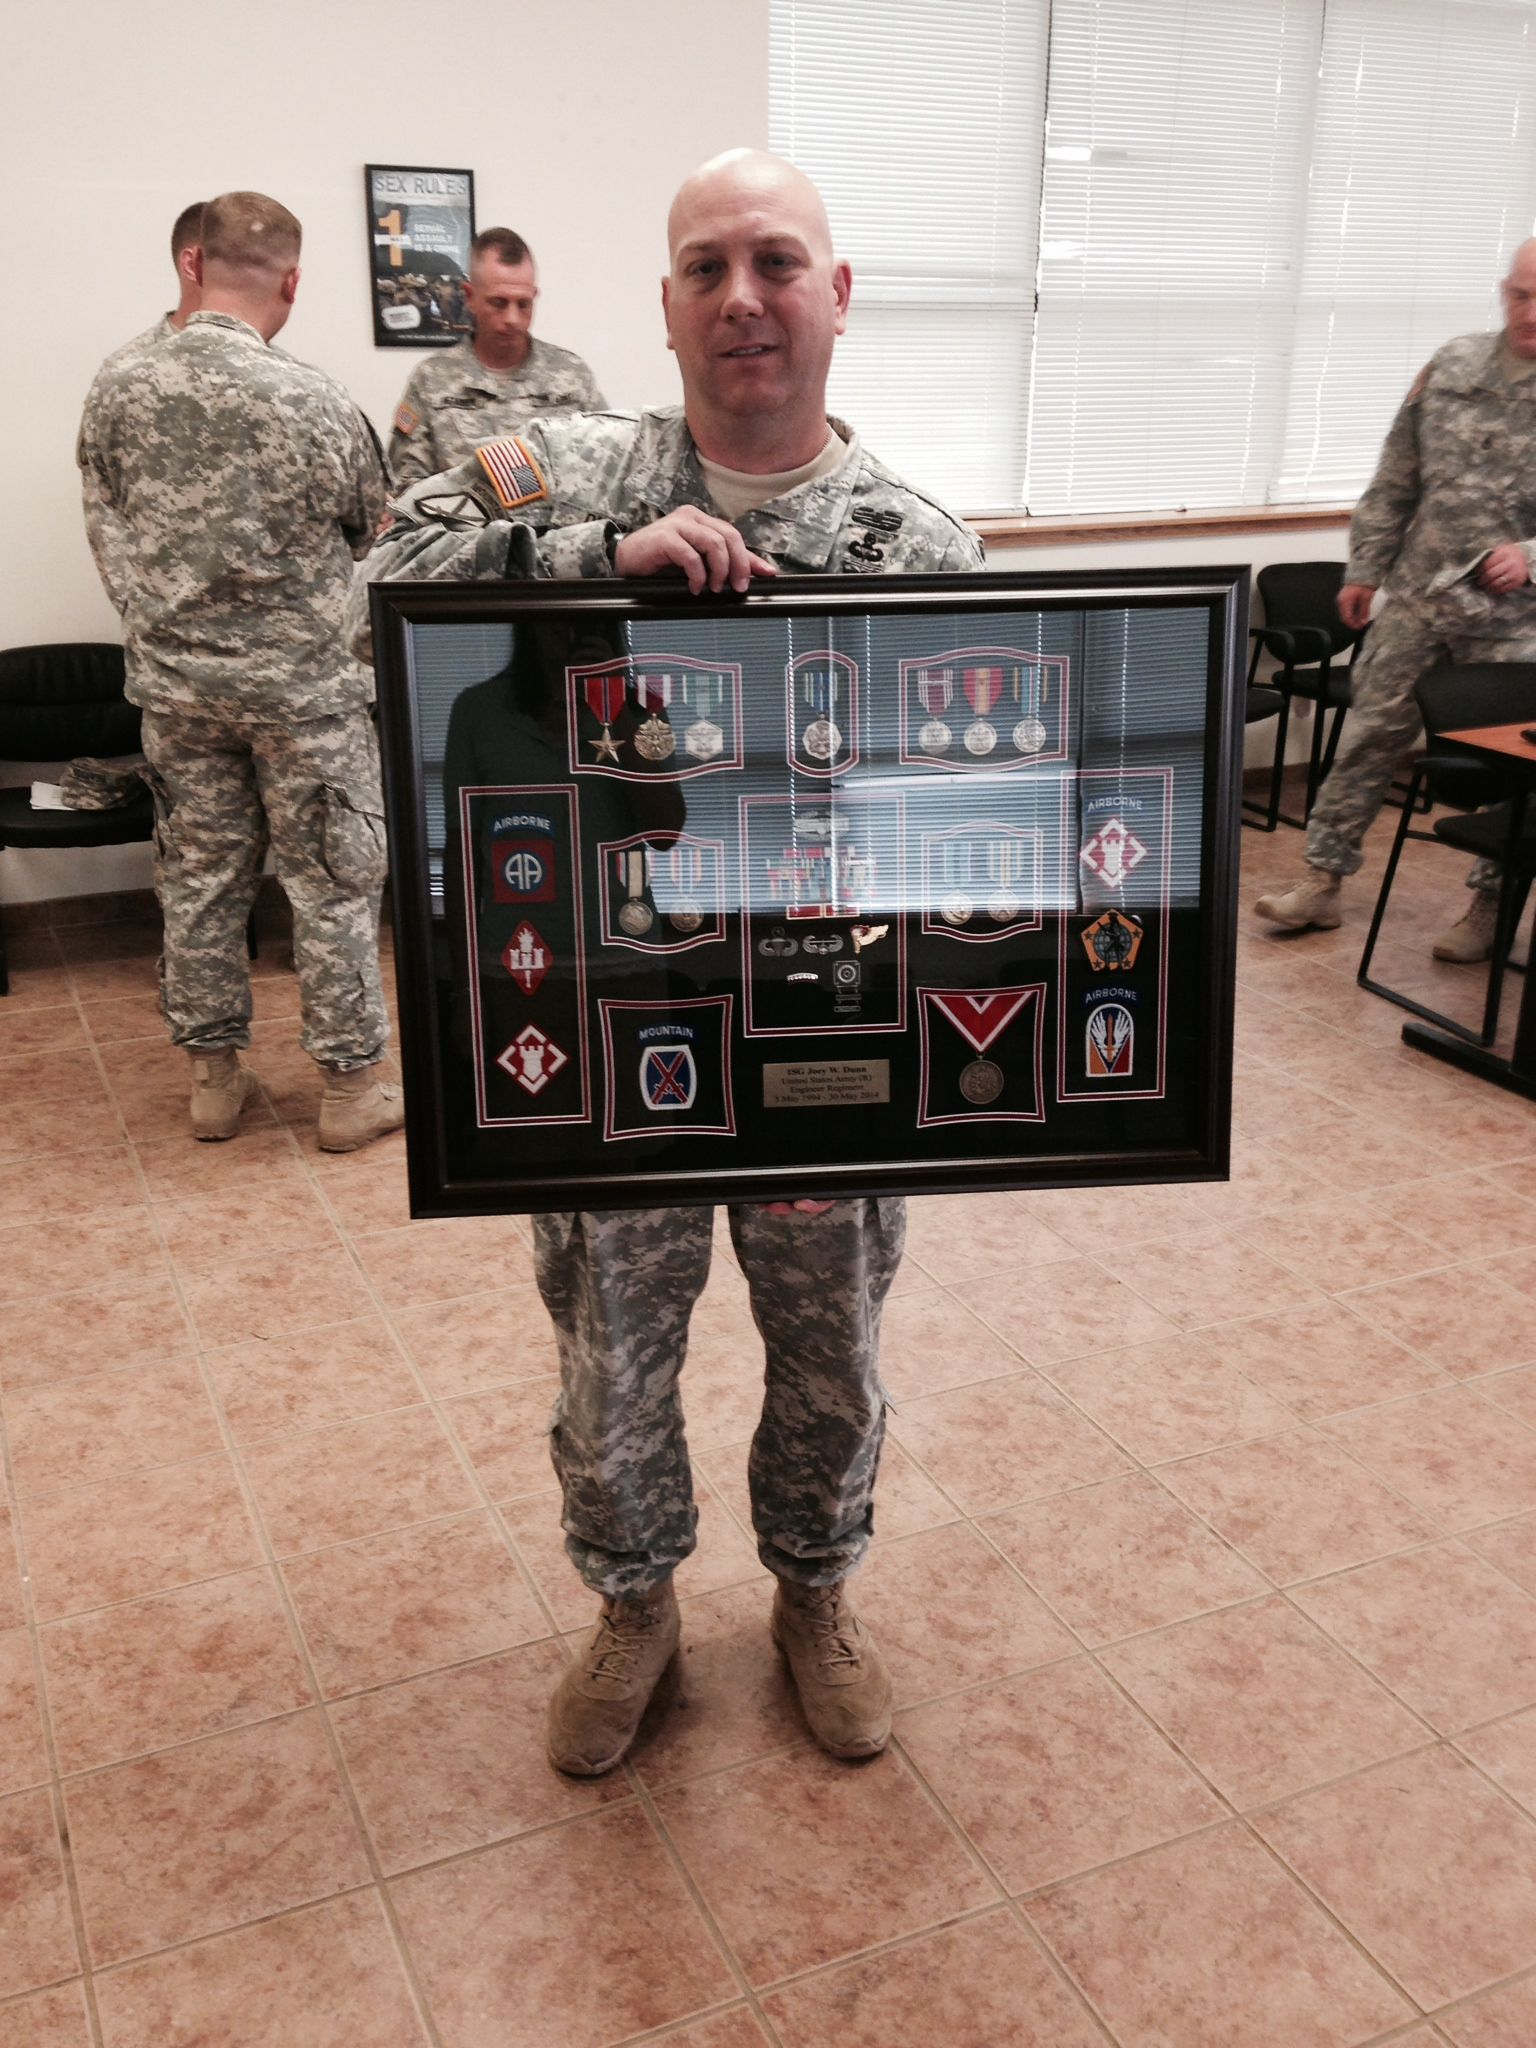 1sg retirement ceremony | blog articles | pinterest | military